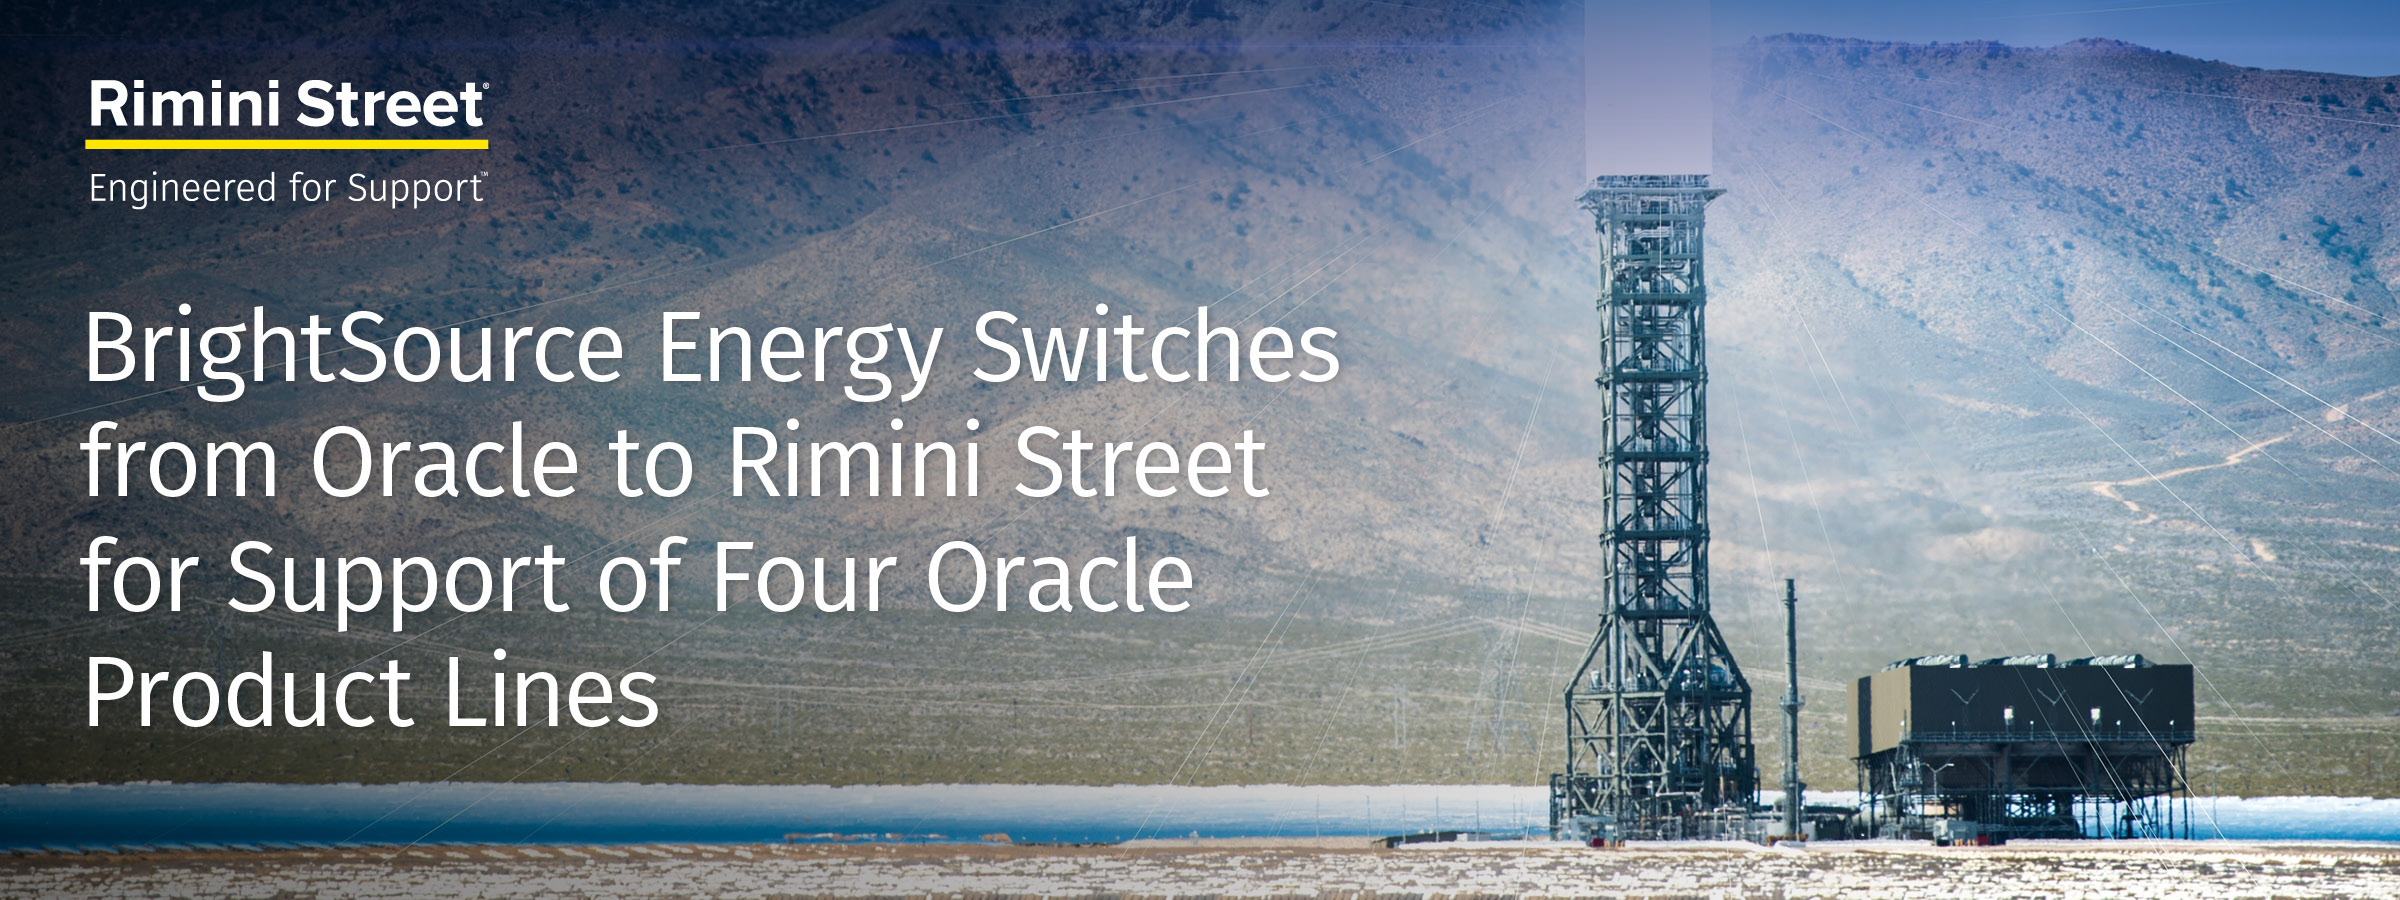 BrightSource Energy Switches from Oracle to Rimini Street for Support of Four Oracle Product Lines (Graphic: Business Wire)